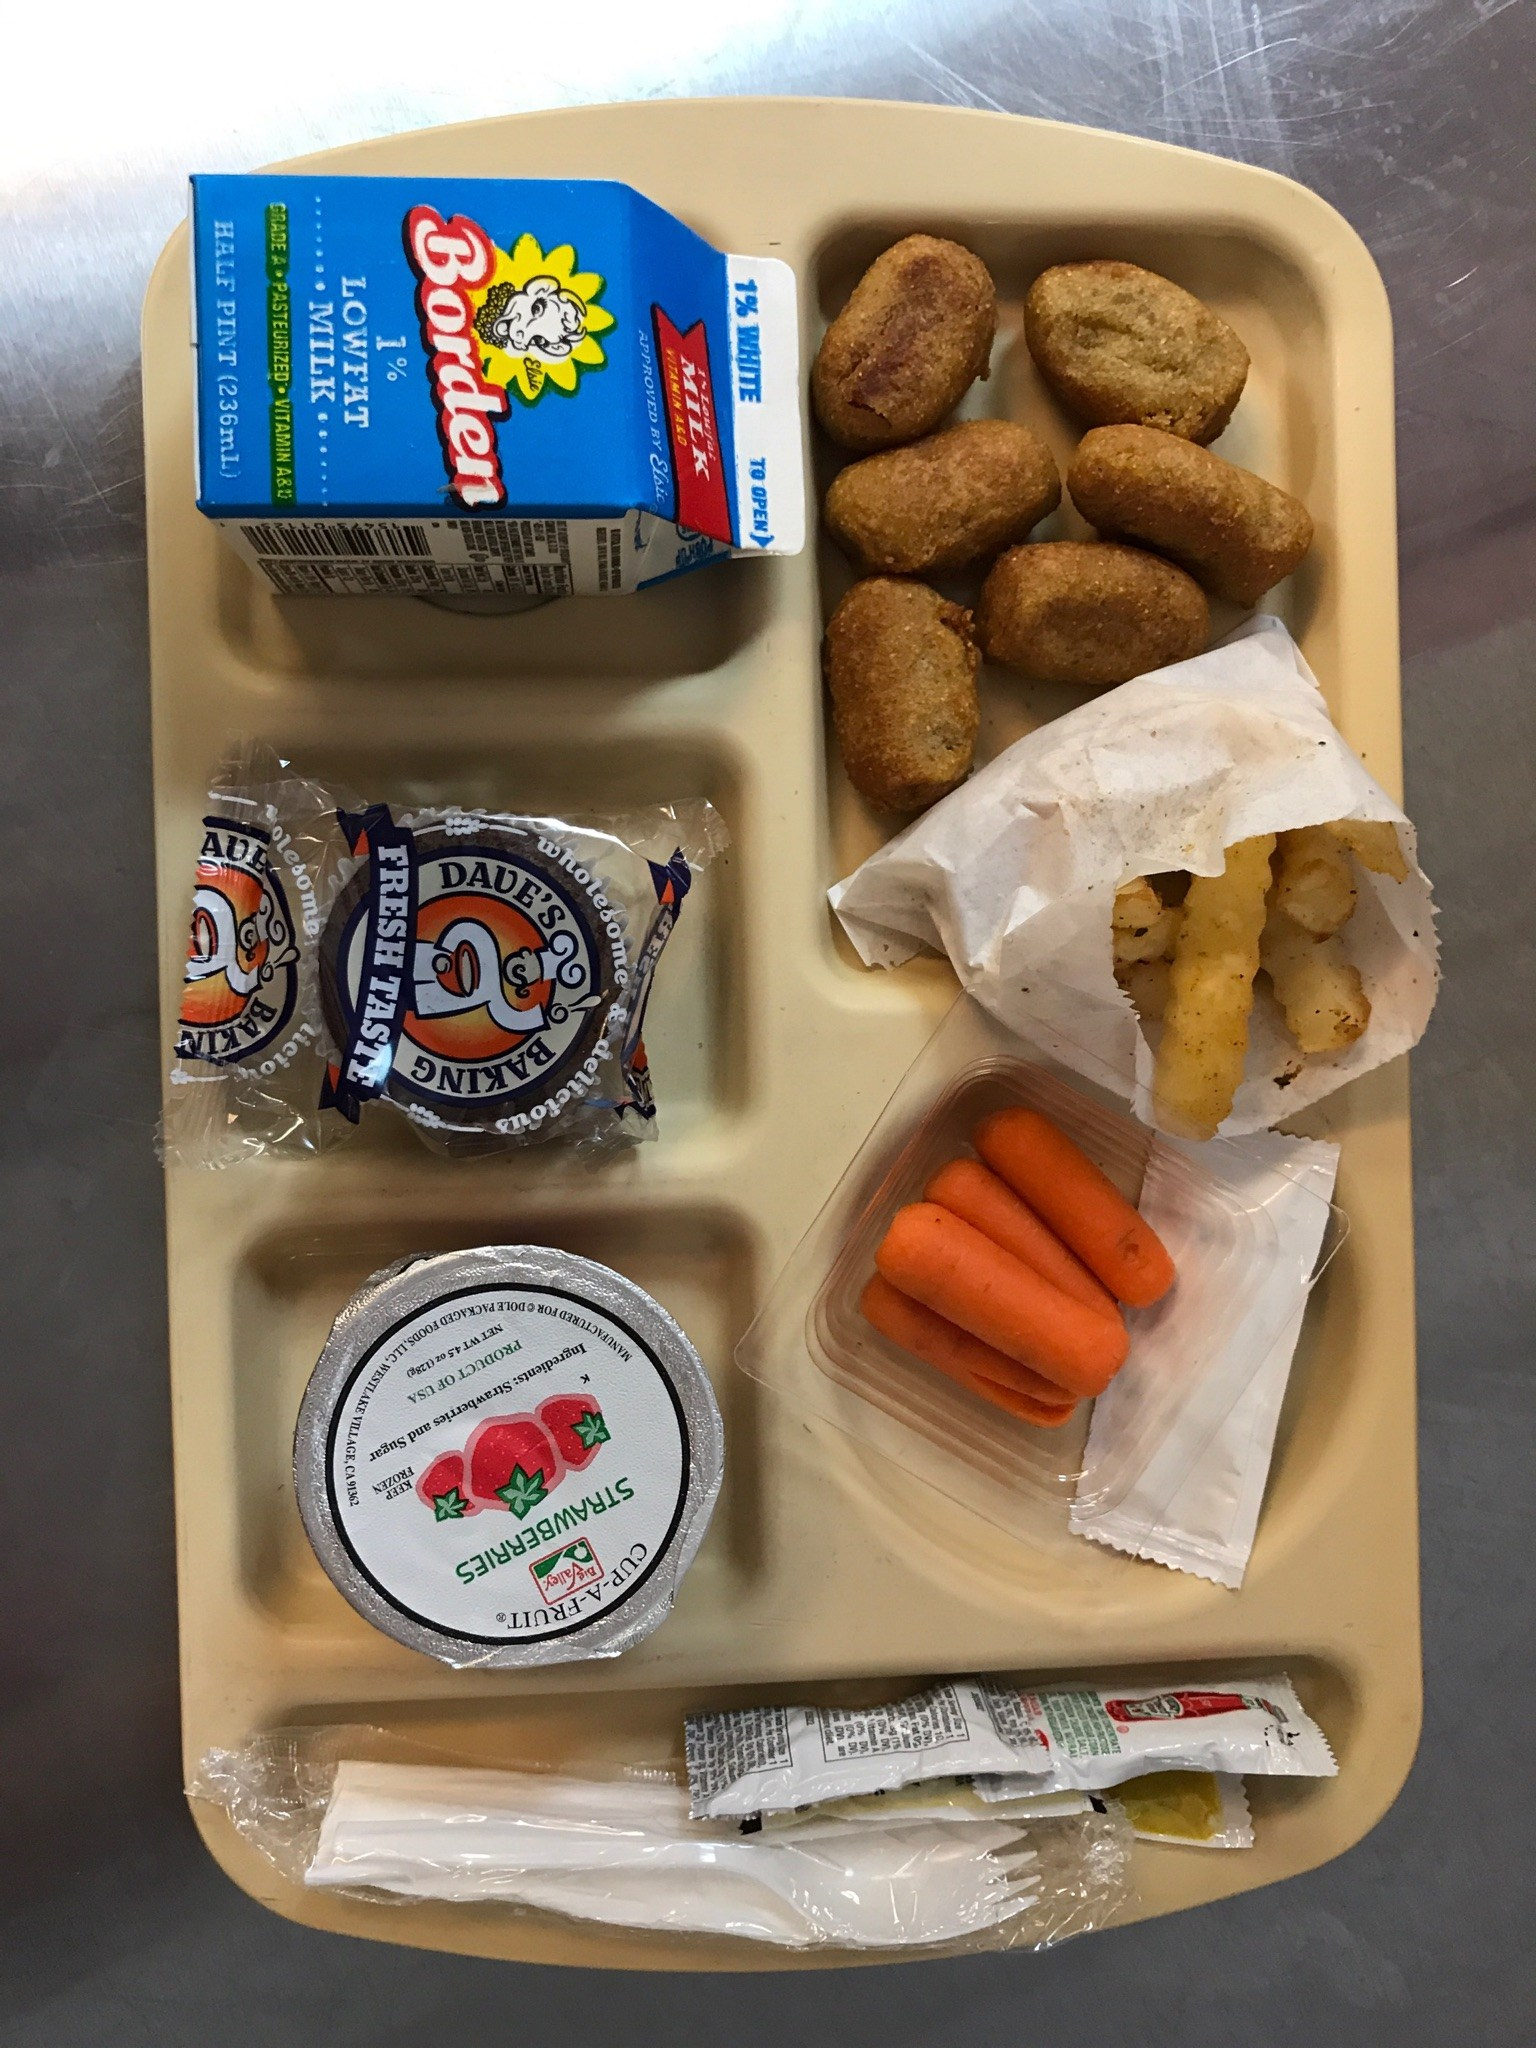 Corn dog nuggets lunch tray